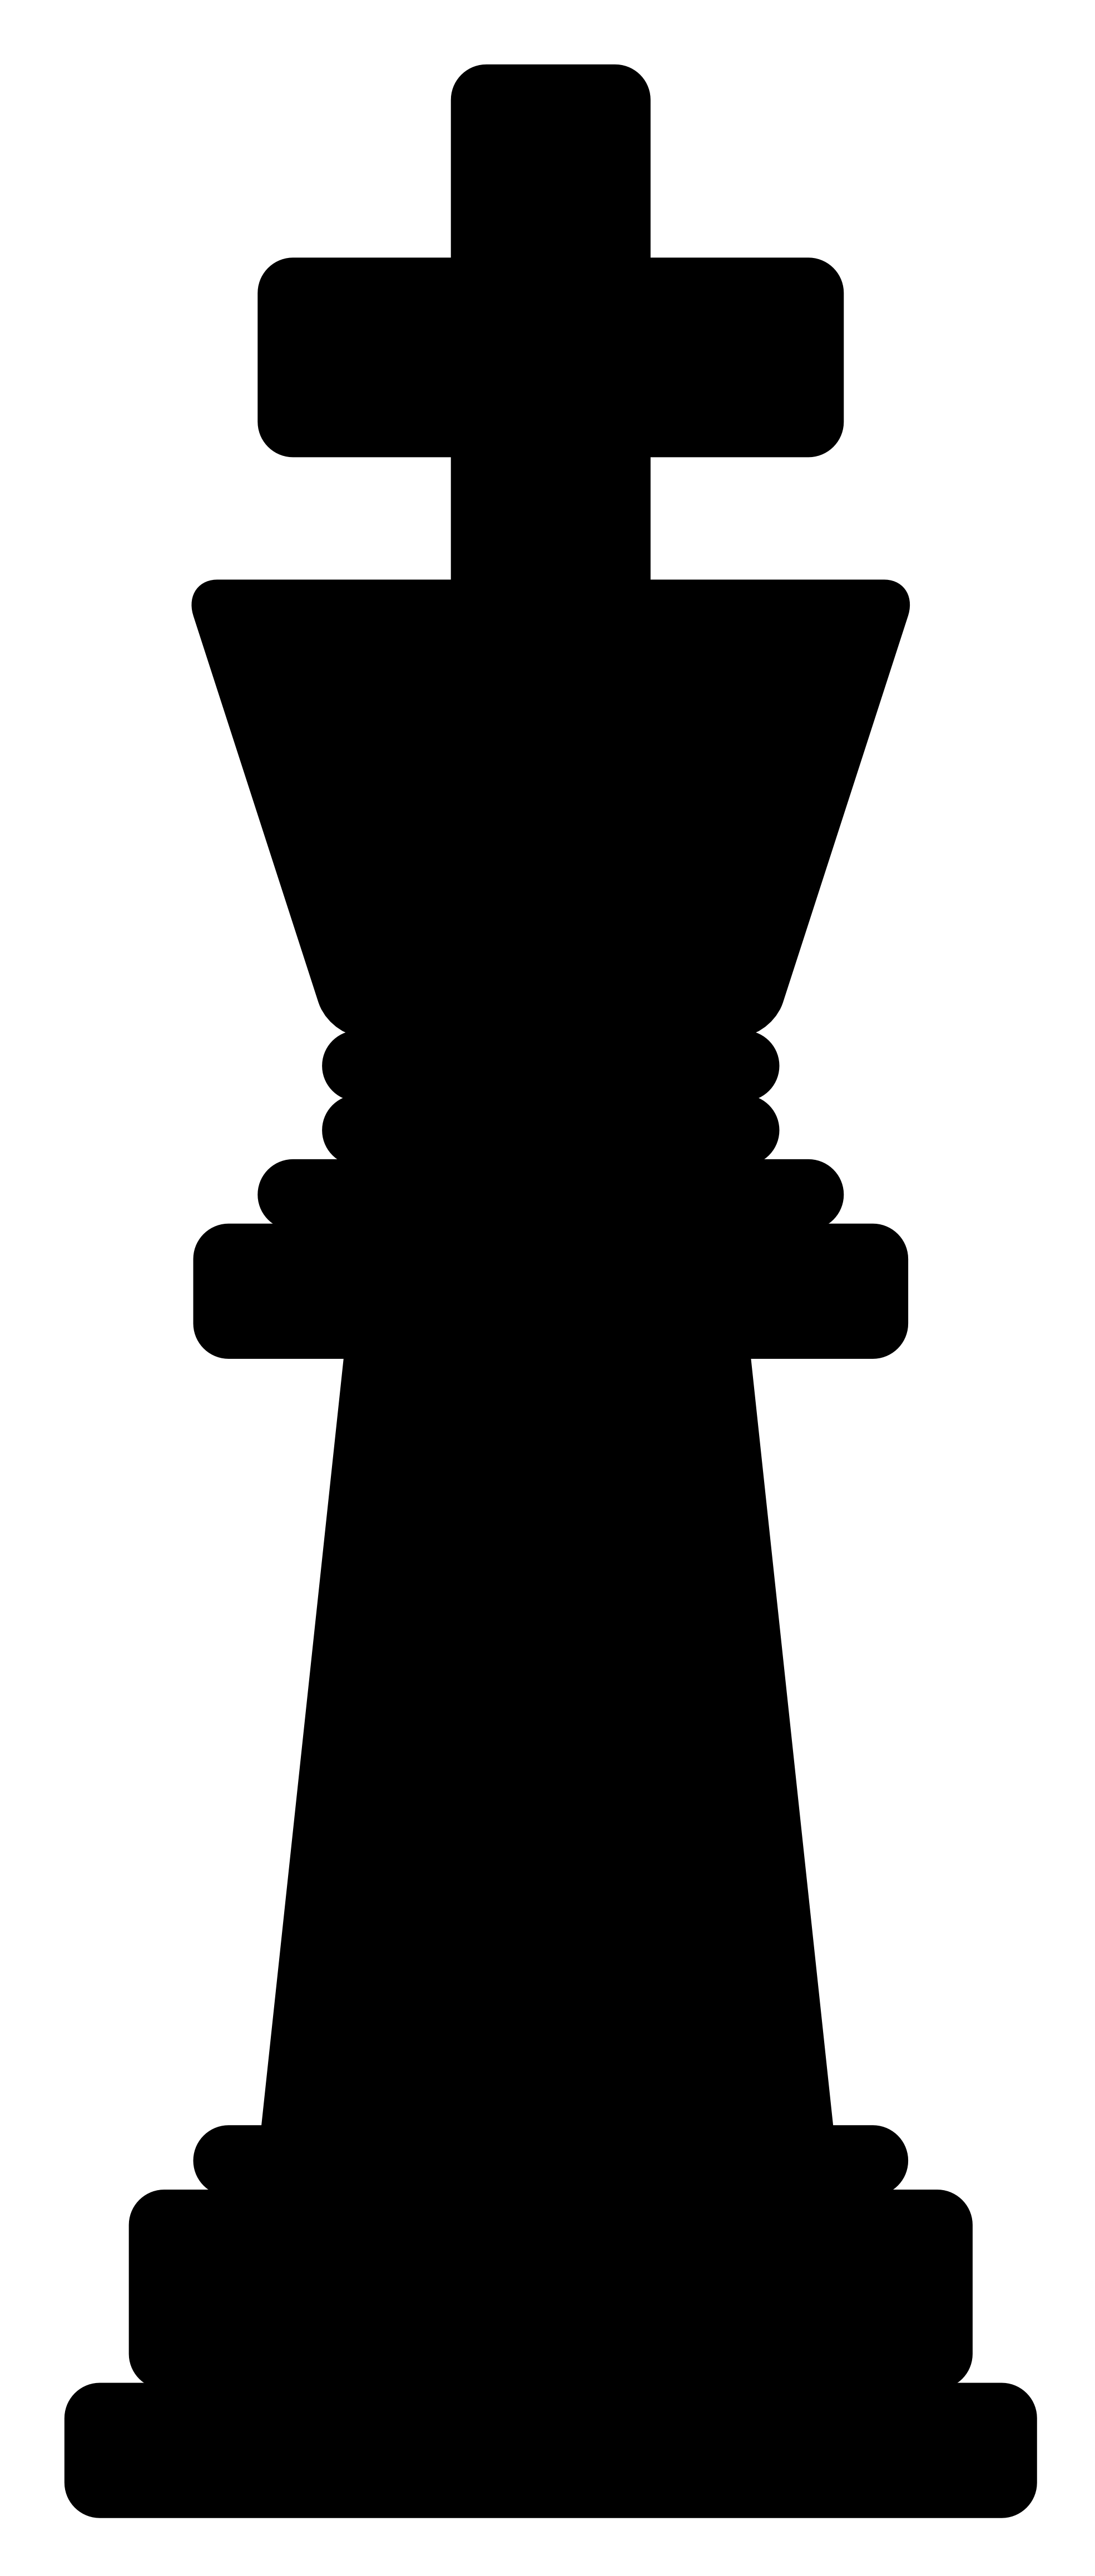 Pice clipart angry Clipart King Chess cliparts Piece